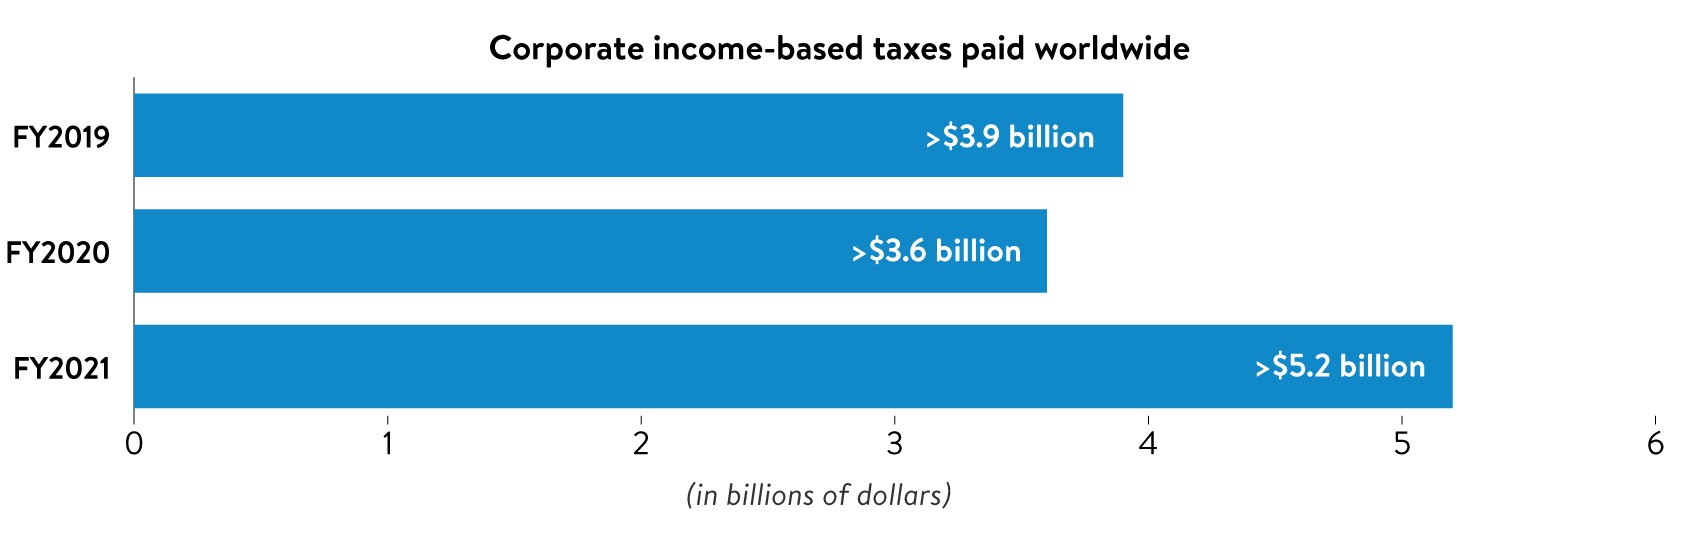 Public Policy/corporate-taxes-paid.jpg